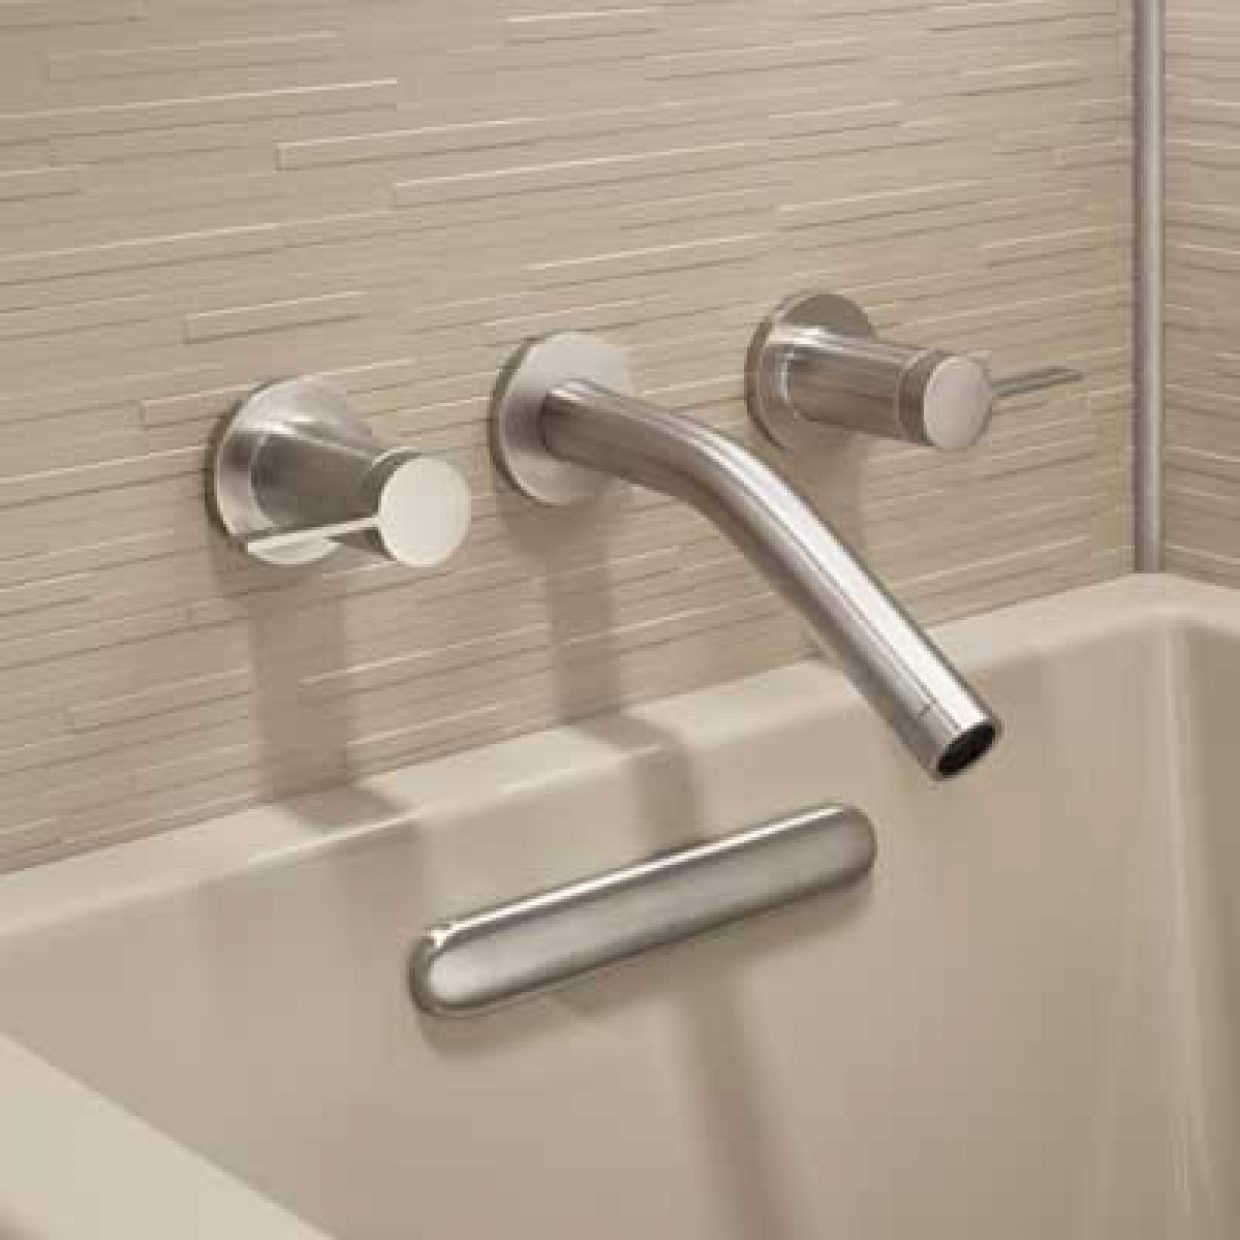 kohler stillness lav faucet kohler stillness lav faucet bathtub faucets better baths 1240 x 1240